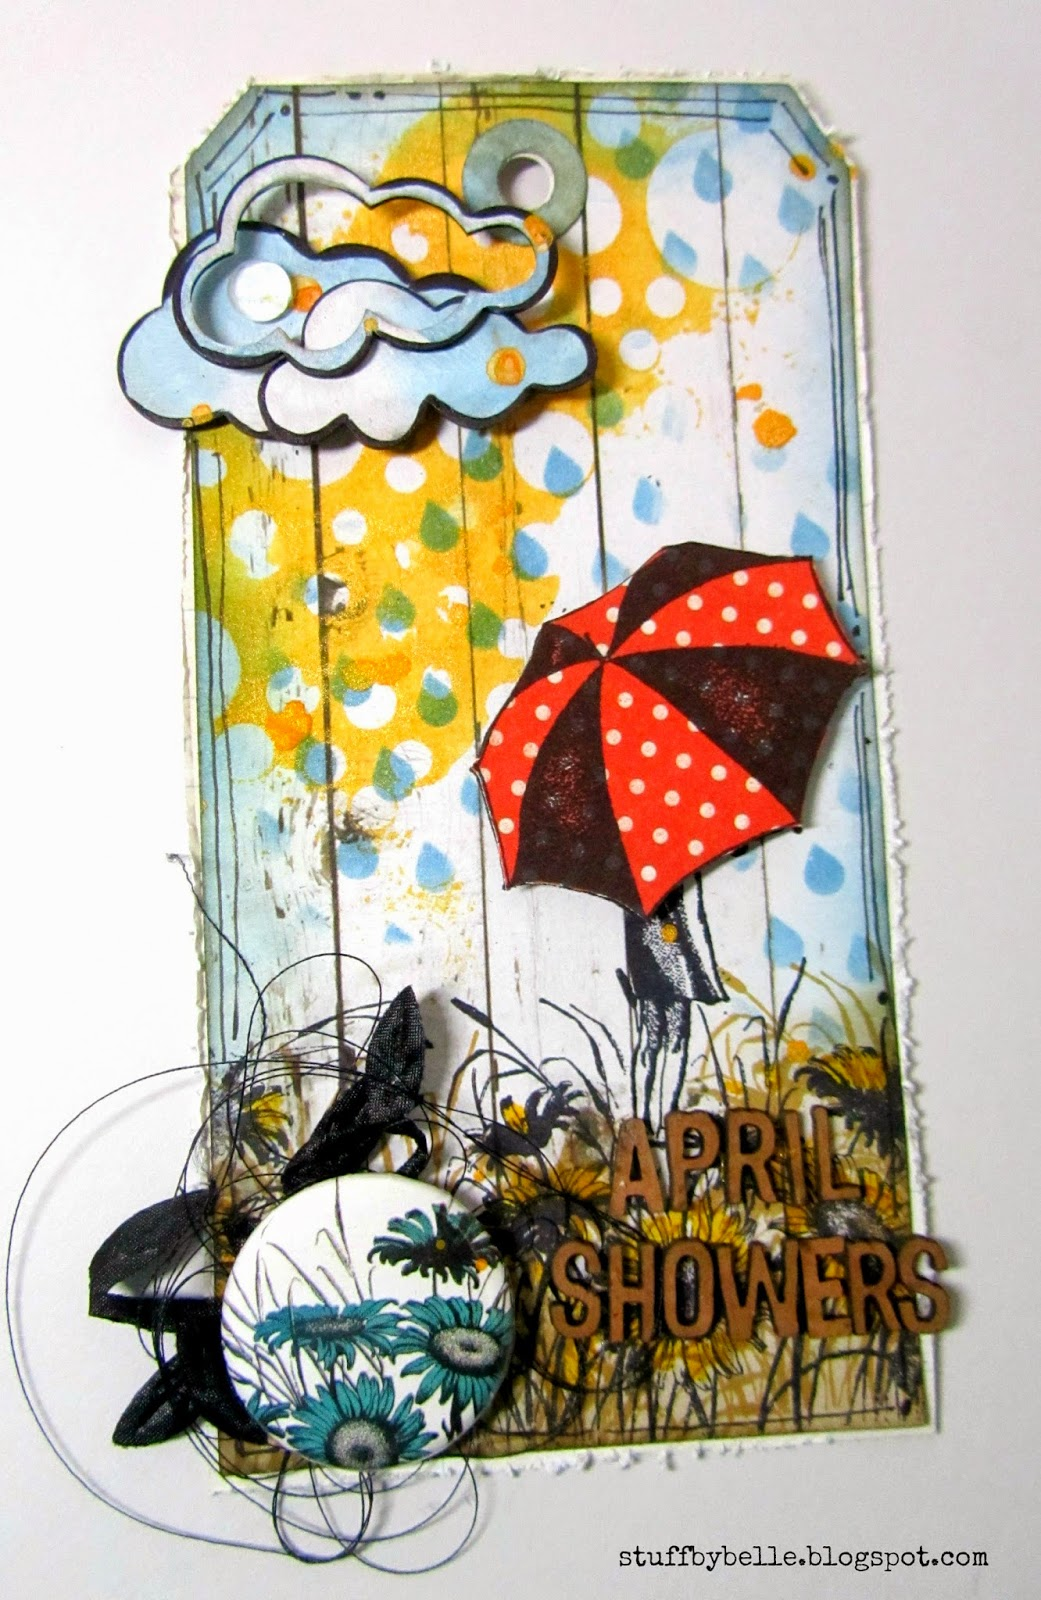 http://stuffbybelle.blogspot.com/2014/04/april-showers.html